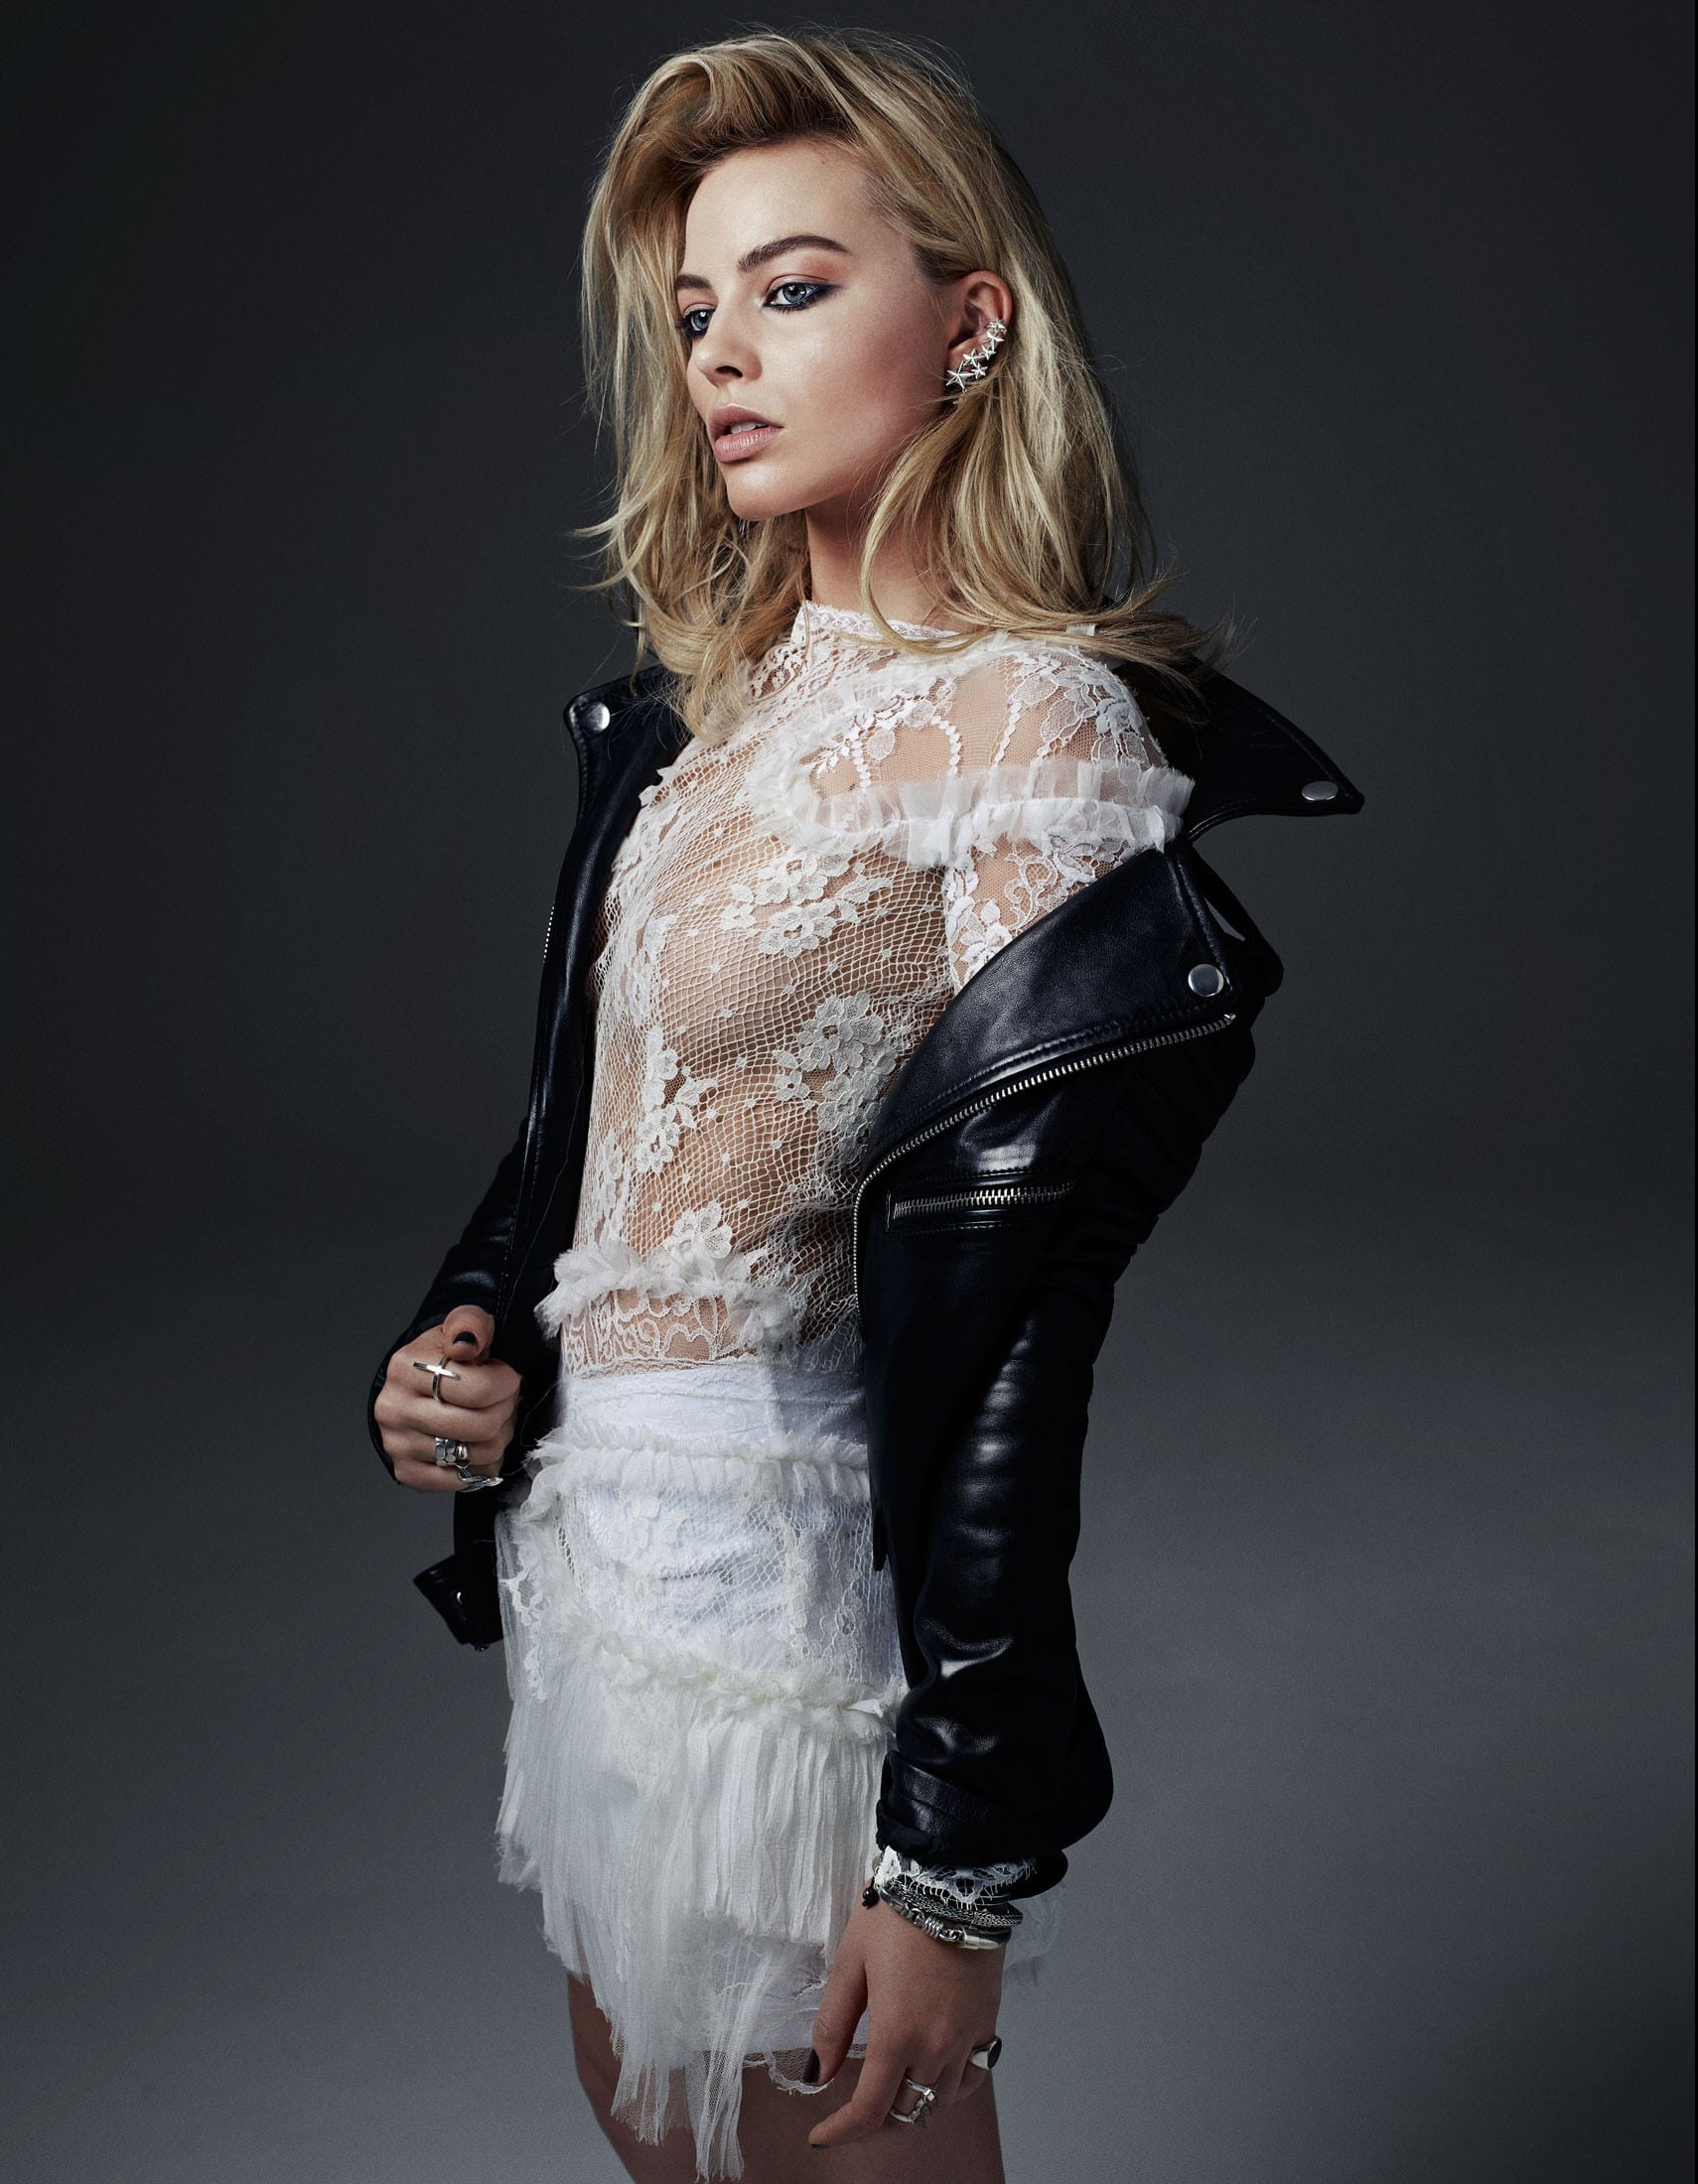 Margot Robbie For mobile